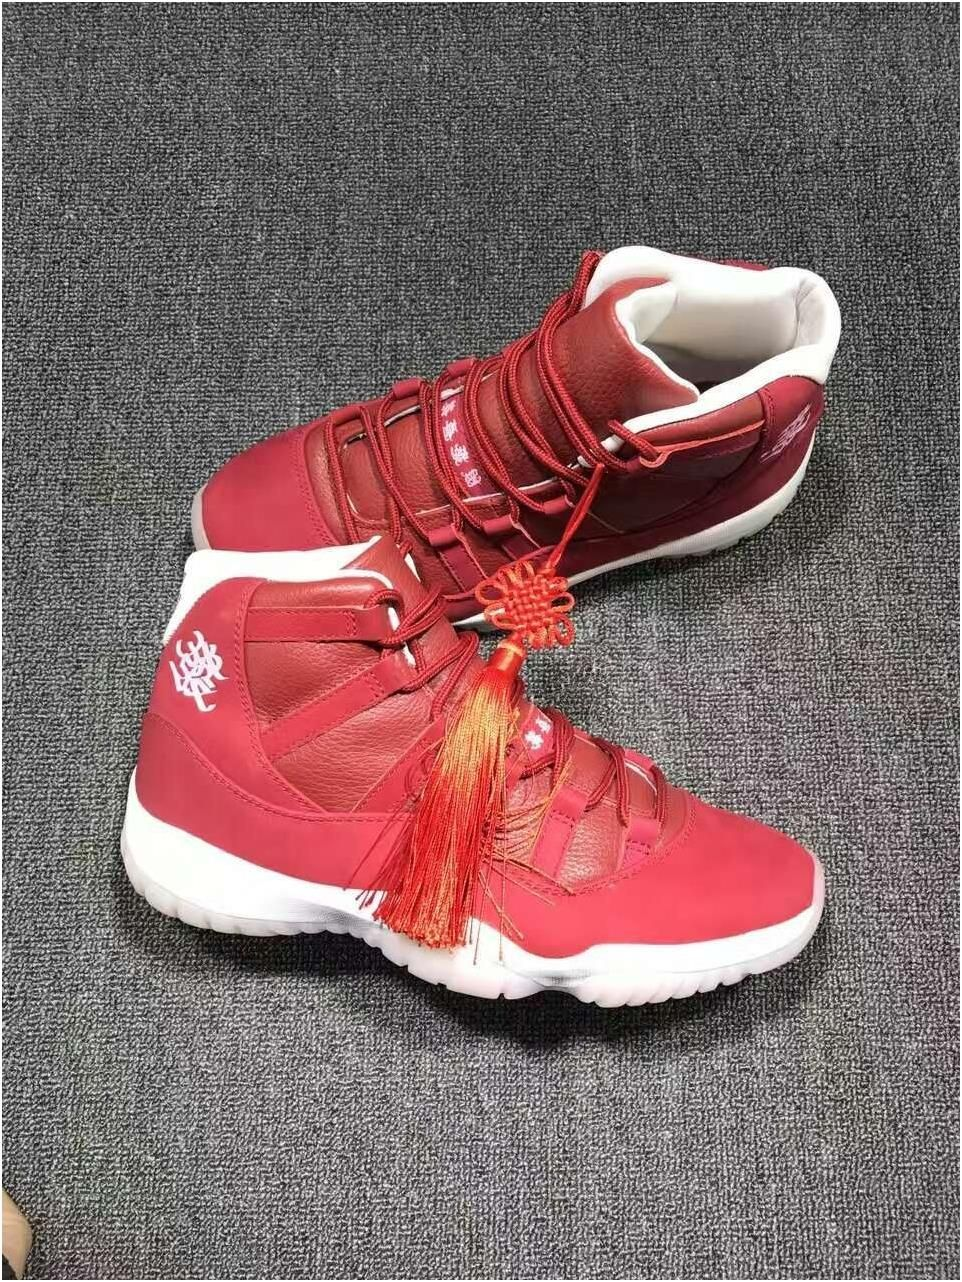 f6f4be30e73a Authentic Air Jordan 11 Chinese knot8